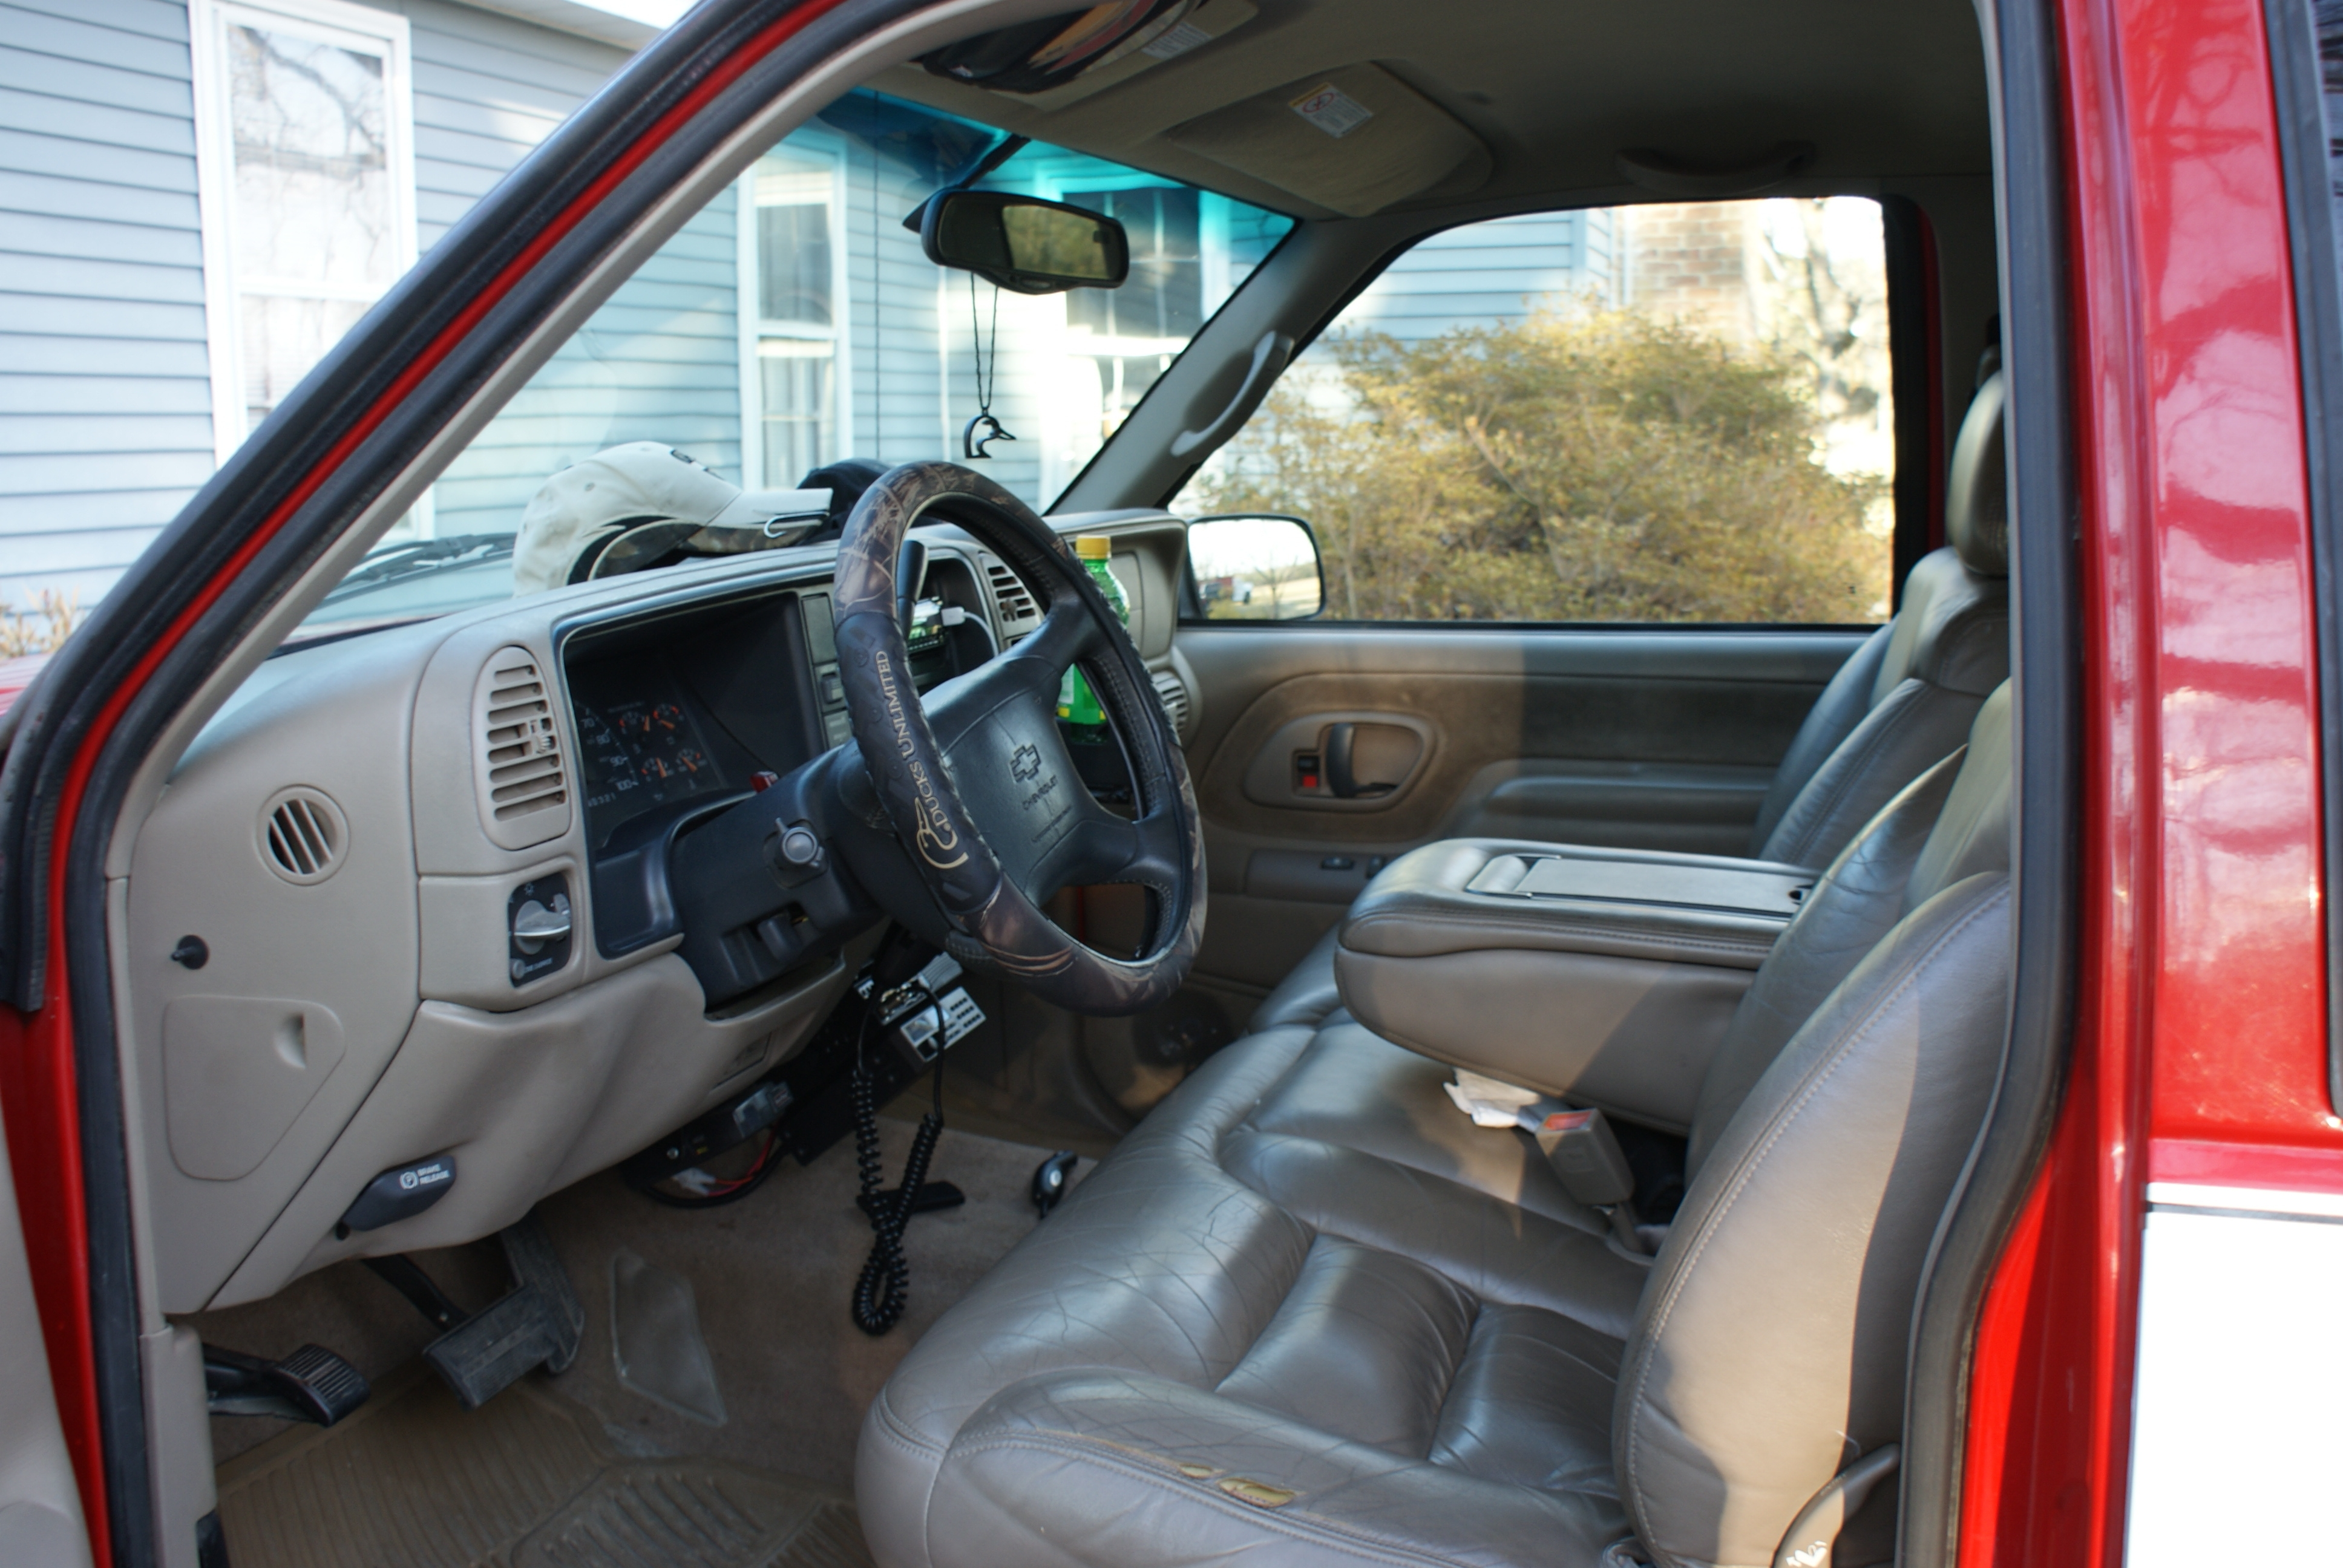 1997 chevy silverado 1500 interior pictures to pin on. Black Bedroom Furniture Sets. Home Design Ideas